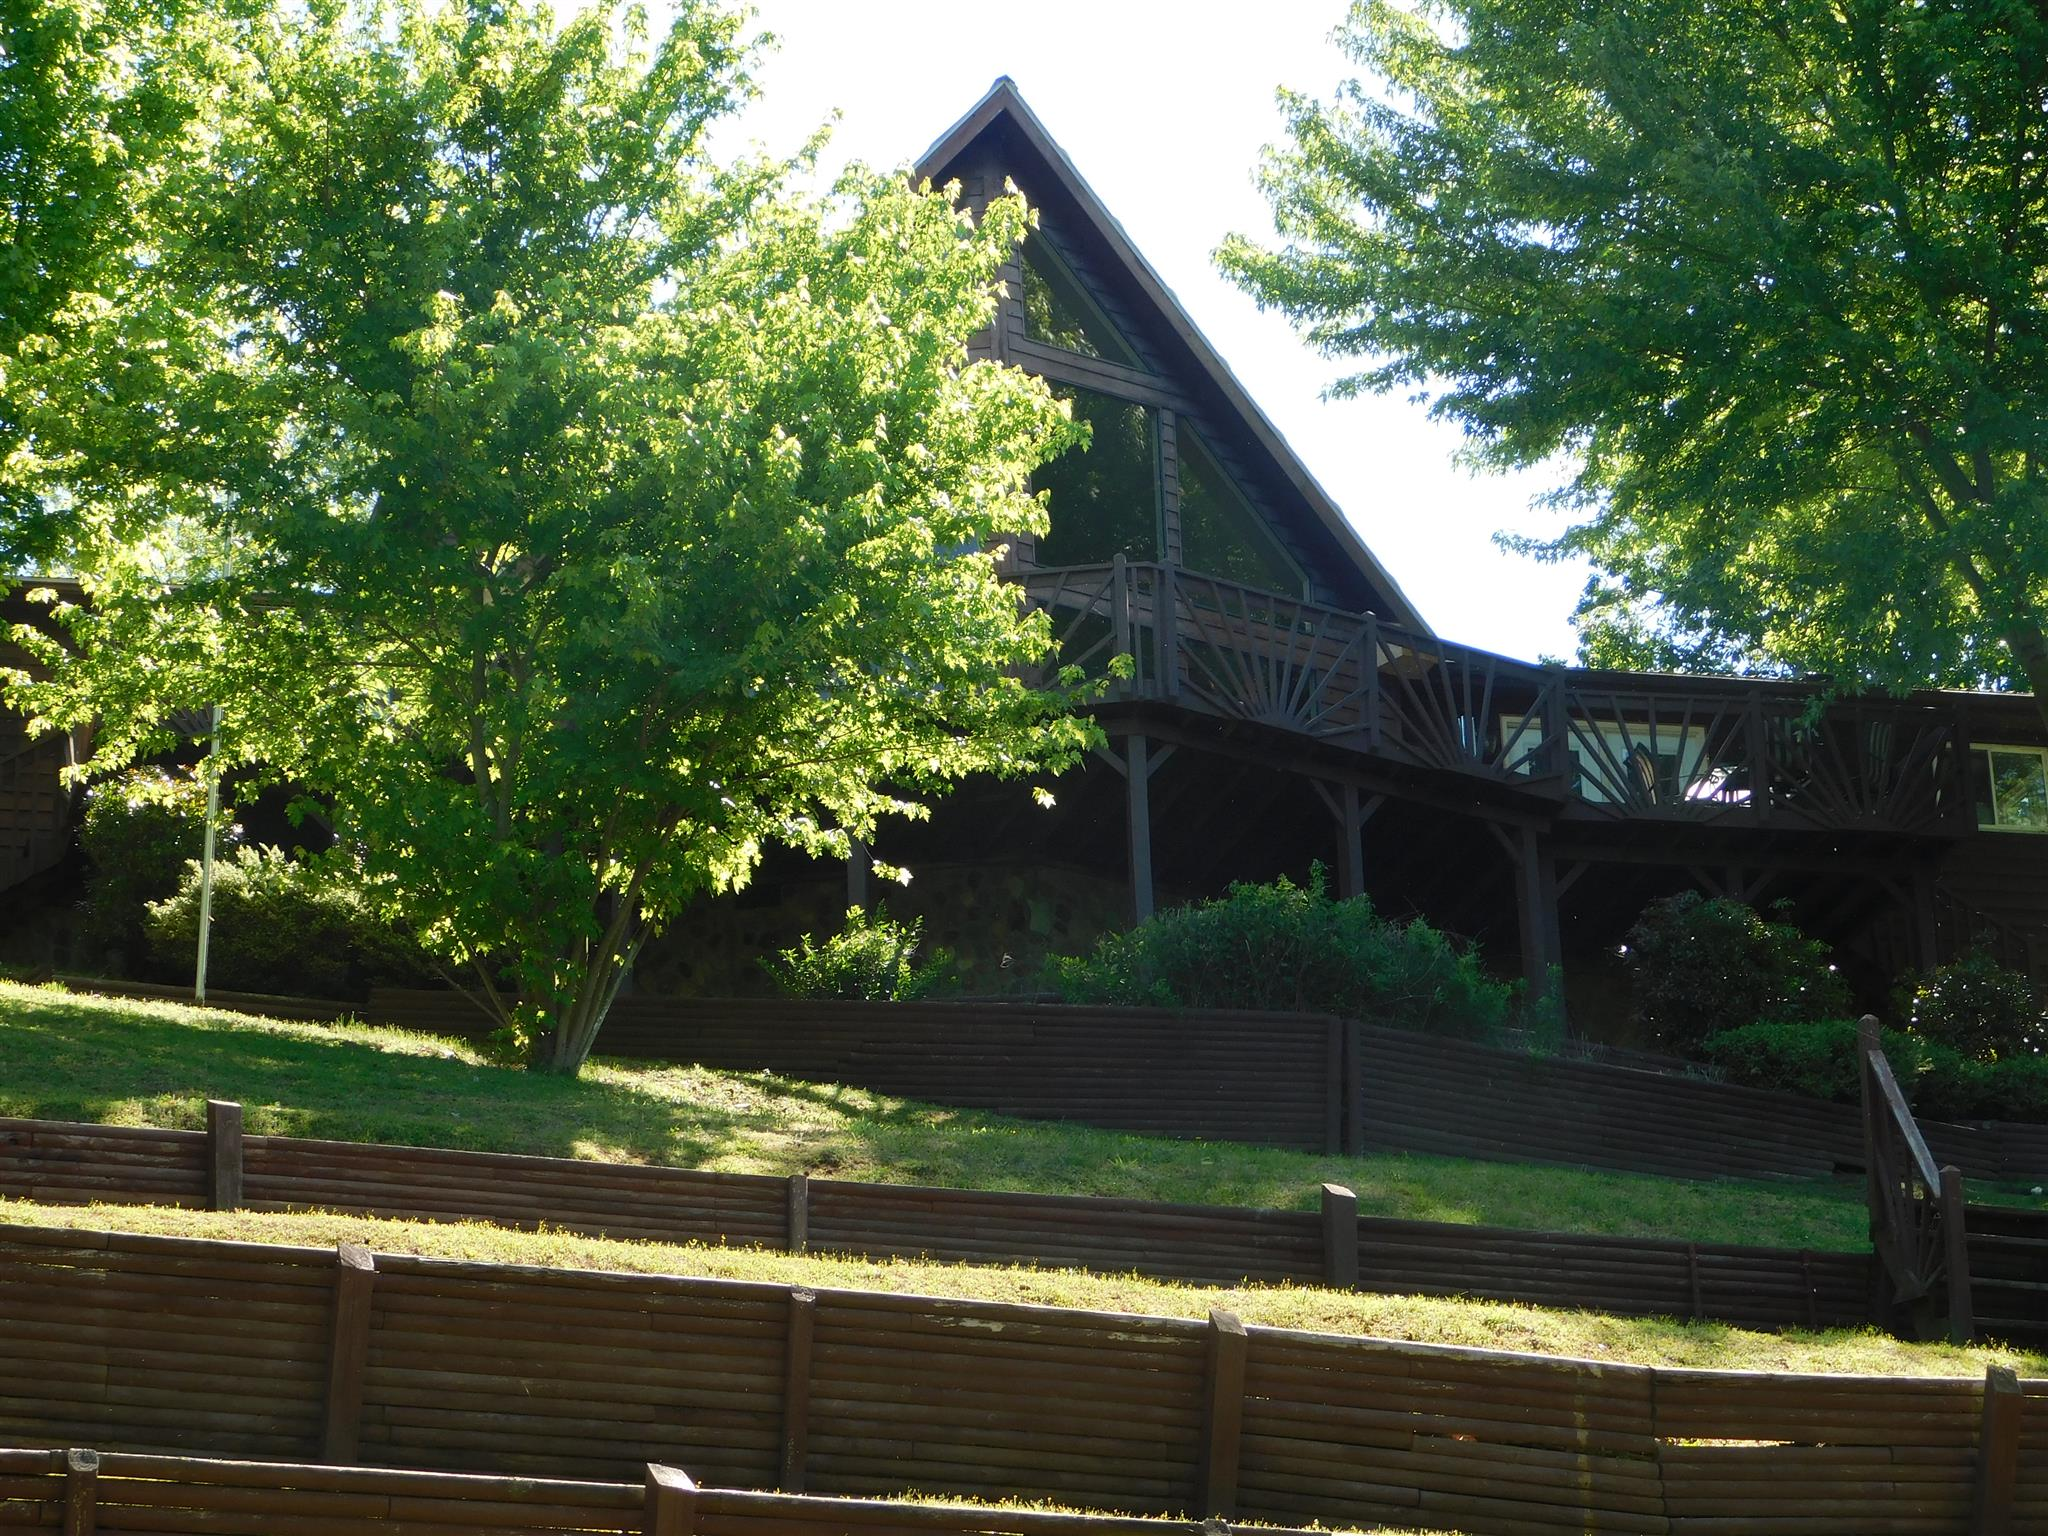 760 Lakefront Dr, Waverly, TN 37185